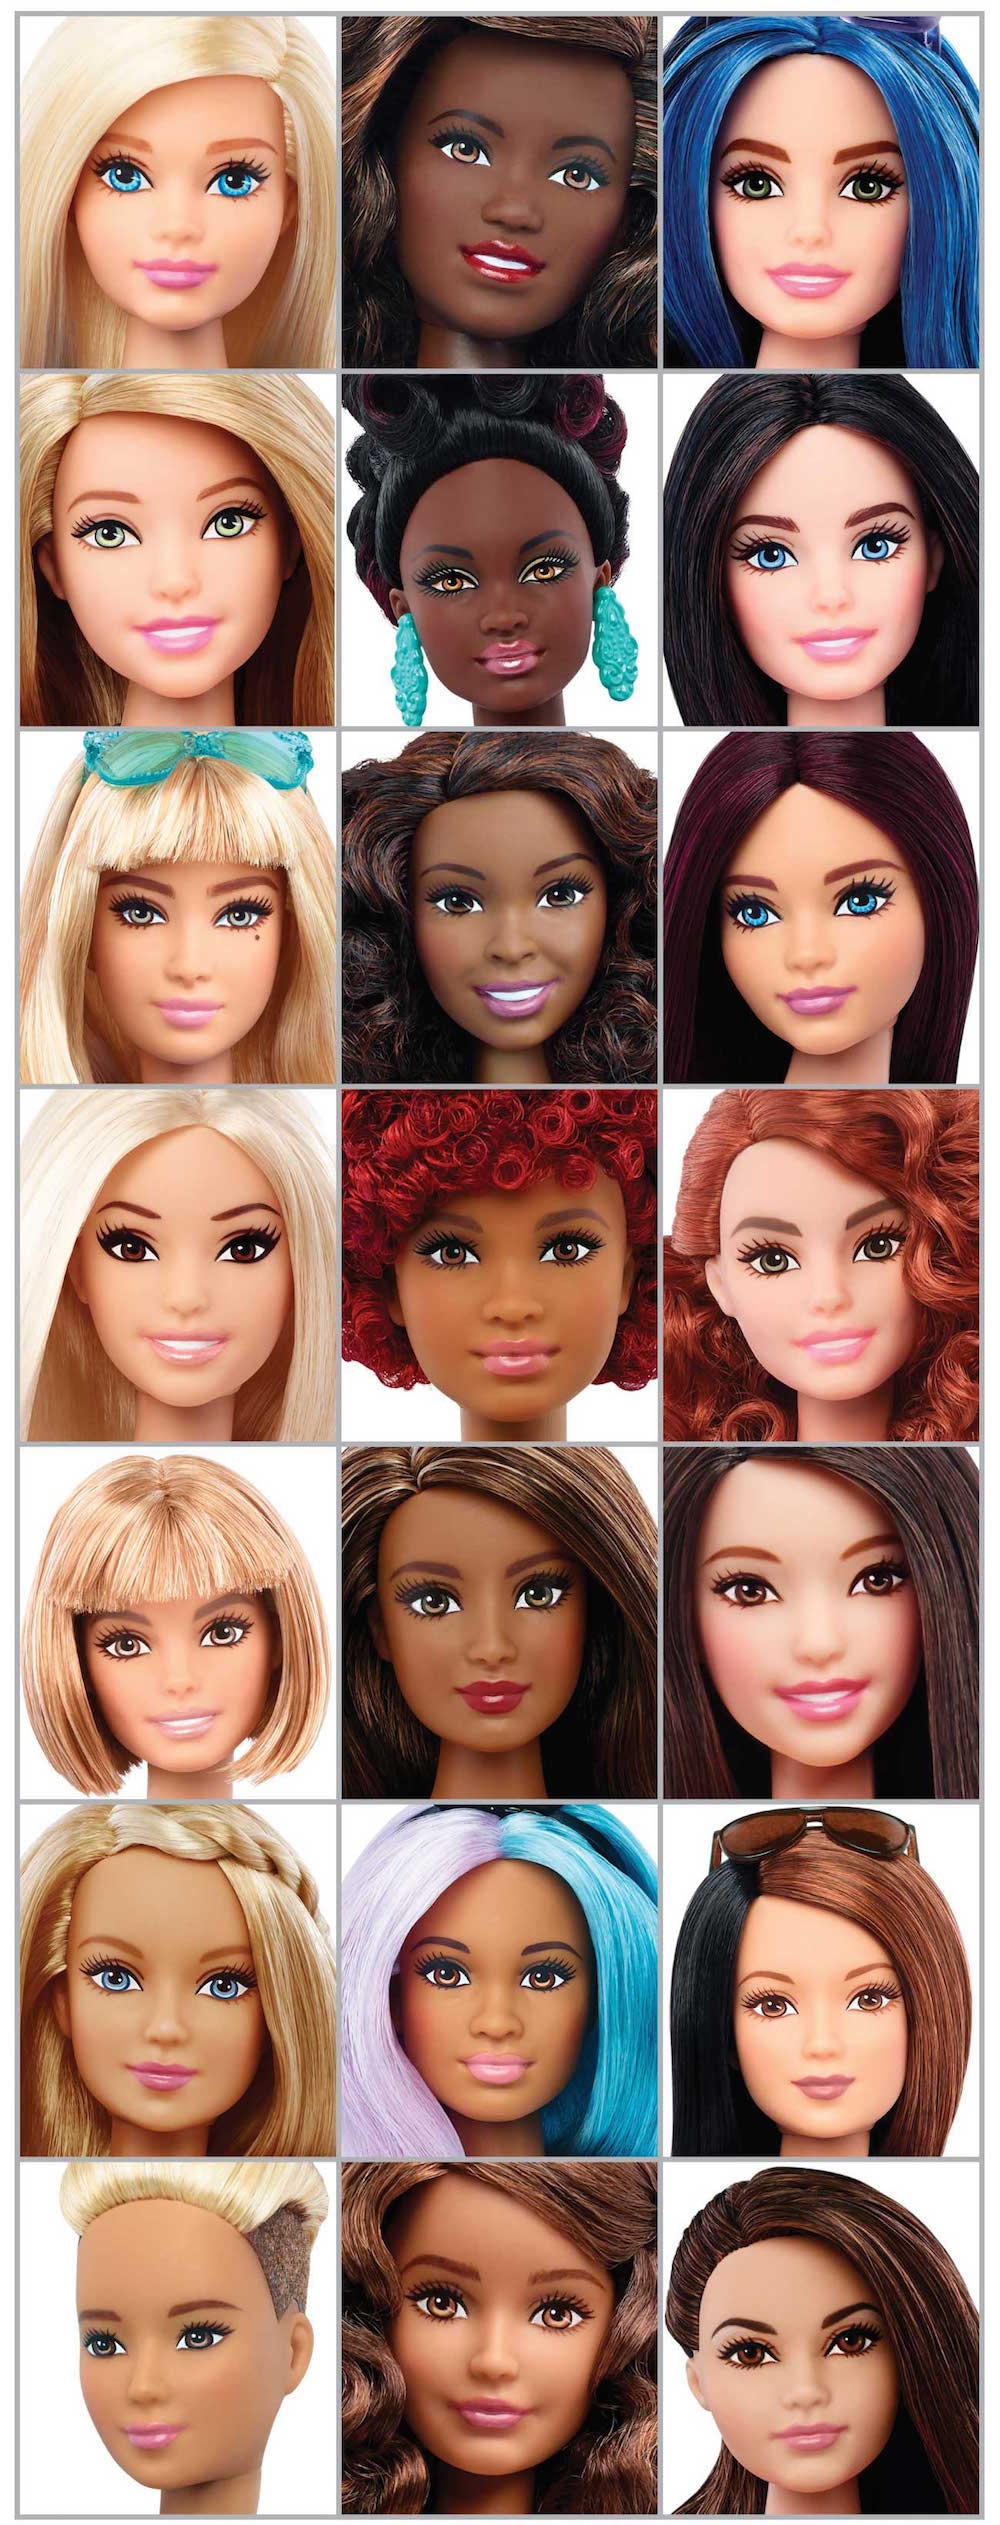 la-fi-g-0129-mattel-barbie-faces